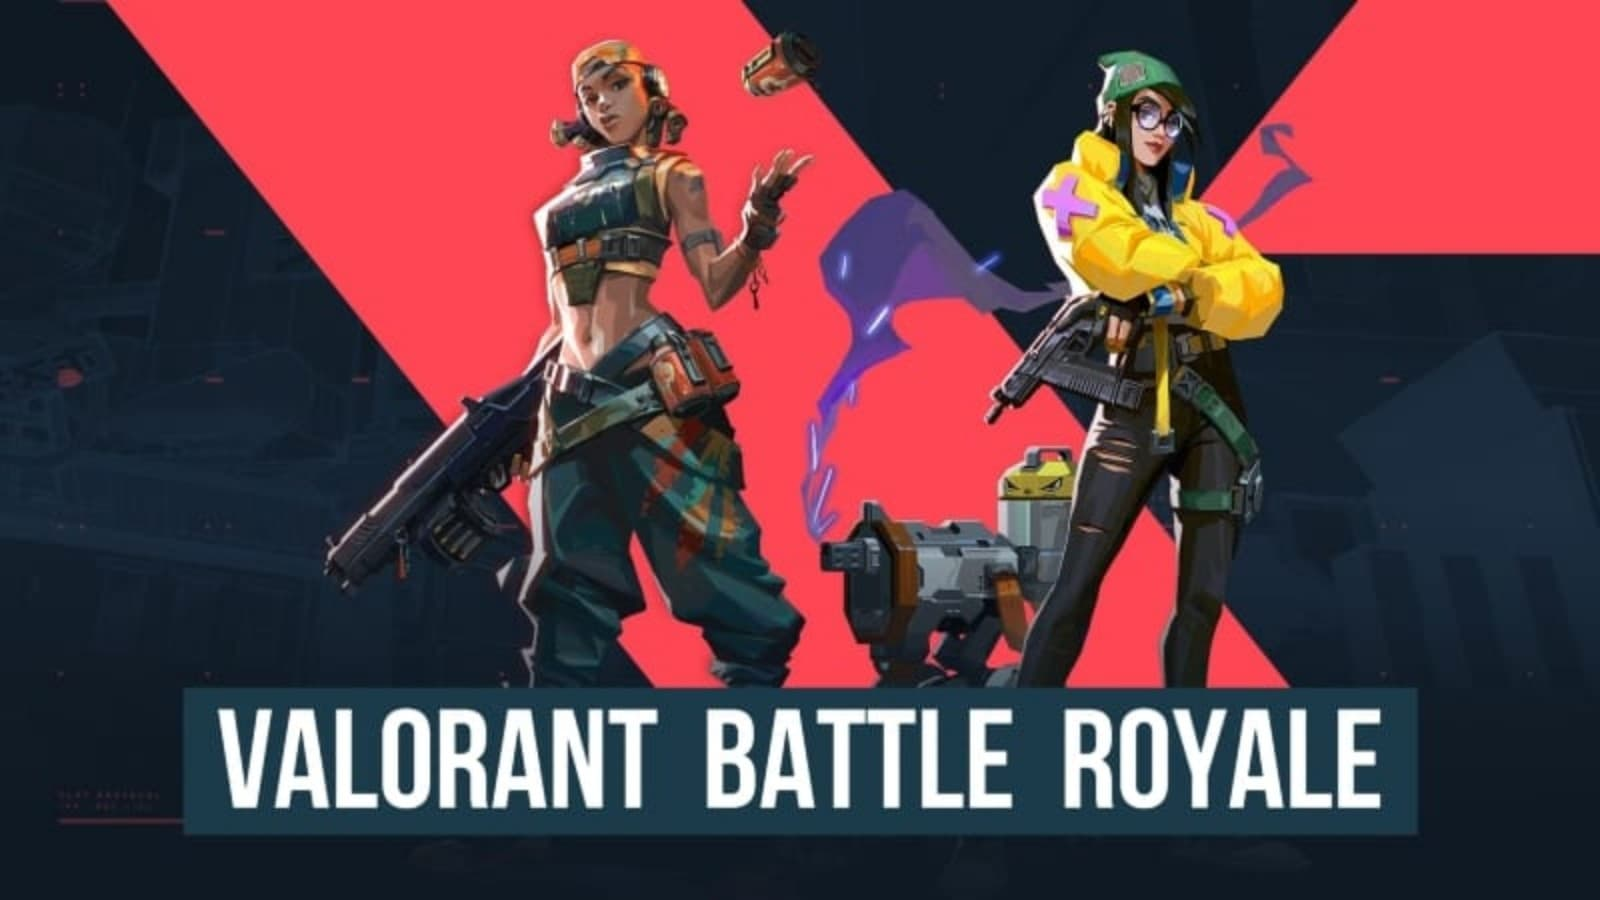 Valorant Battle Royale Mode Leaks Hinted By Sources